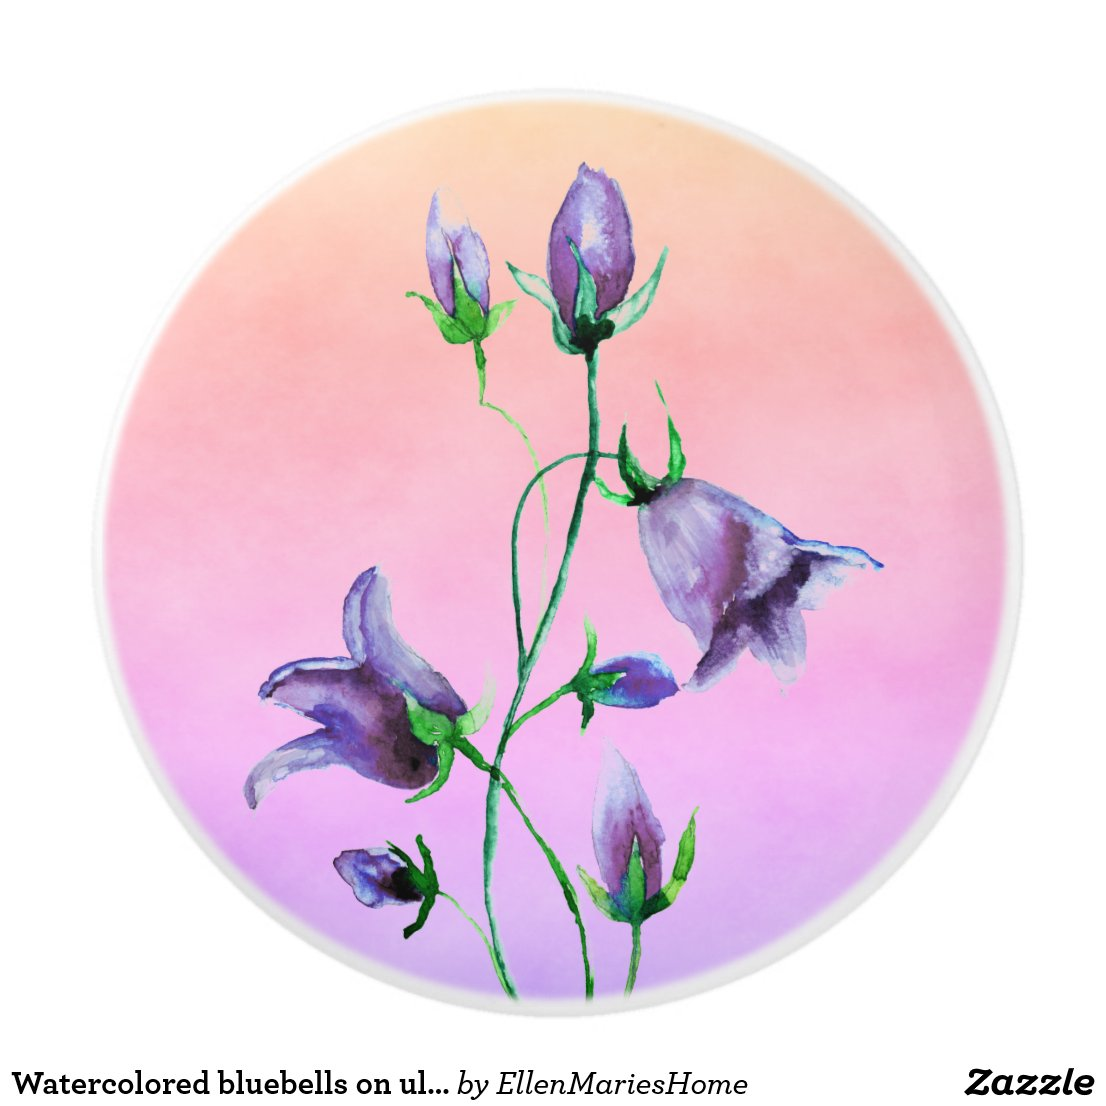 Watercolored bluebells on ultra violet and peach ceramic knob